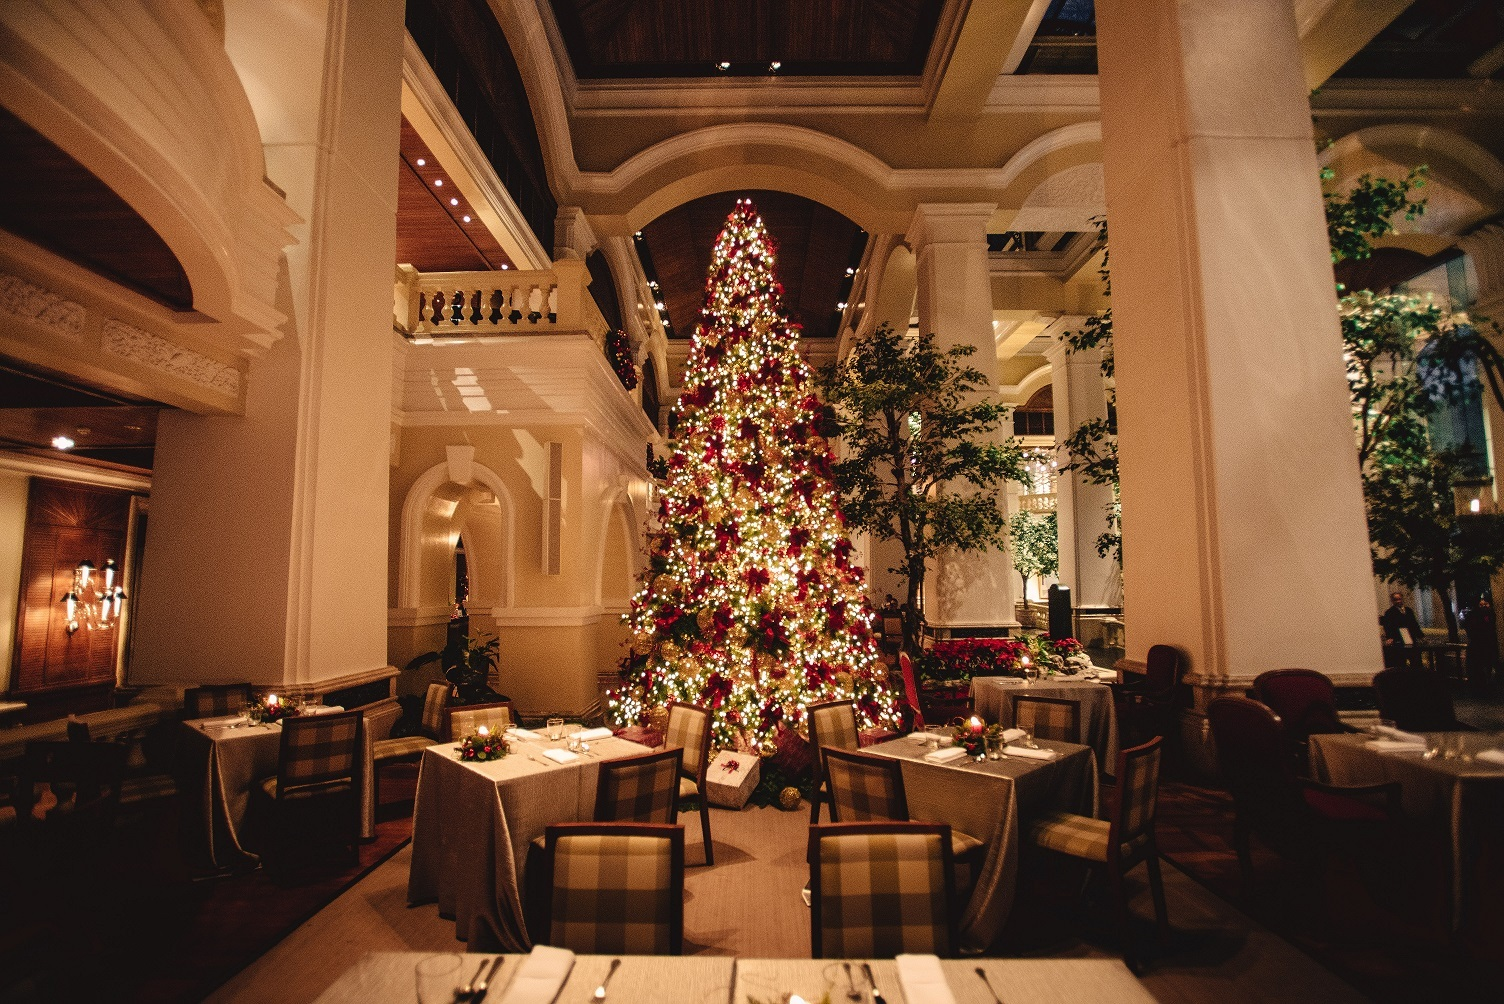 Best Restaurants For Xmas Eve And Christmas Day In Boston 2021